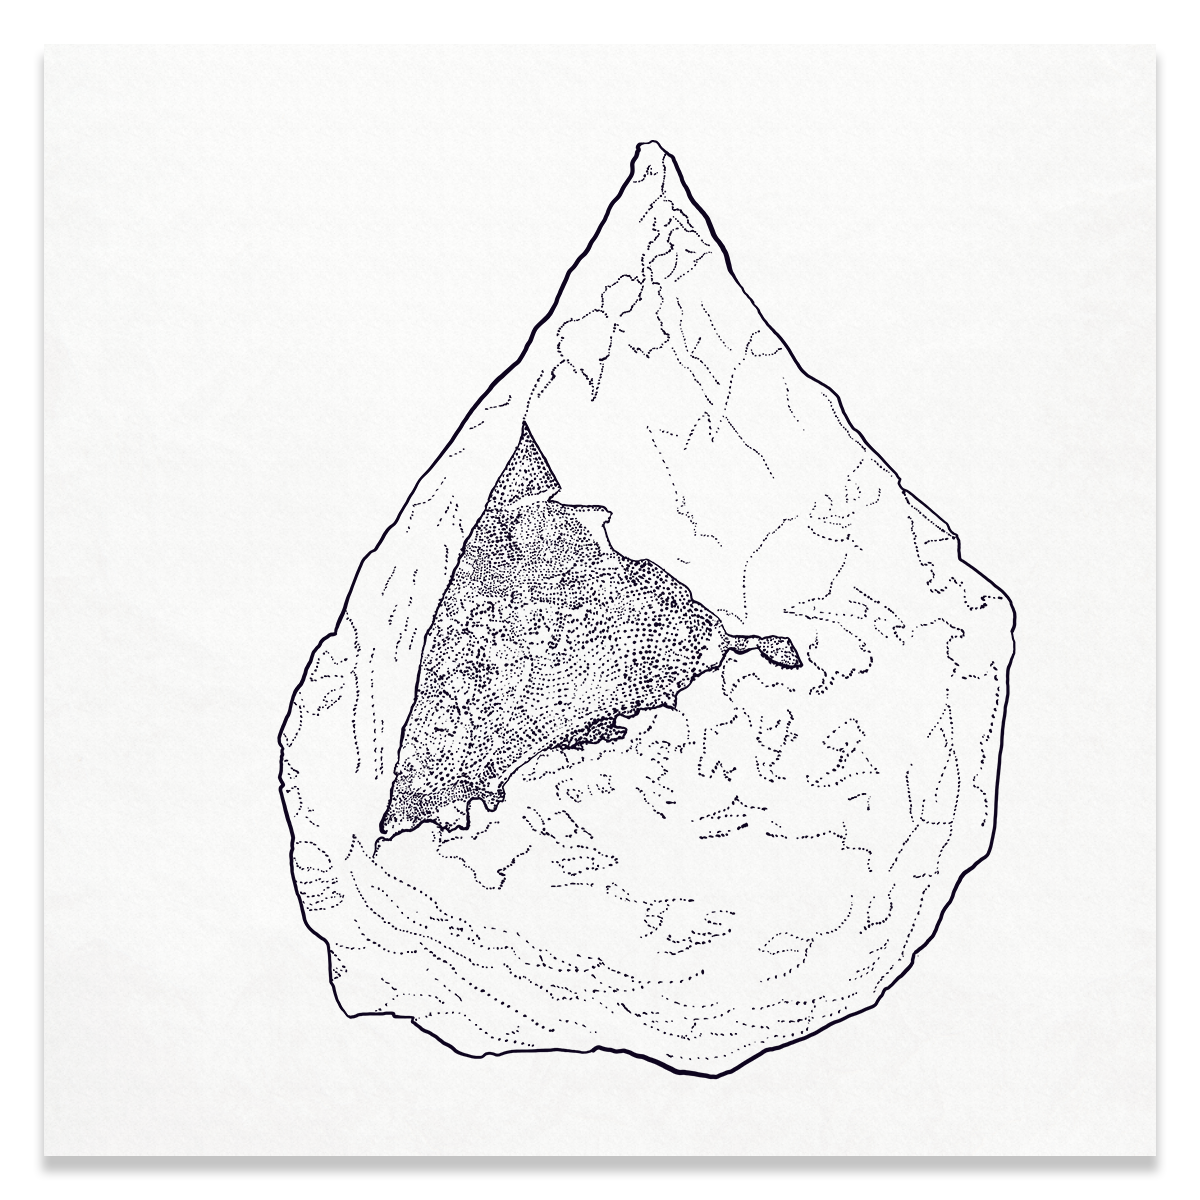 Stones_0007_8.png